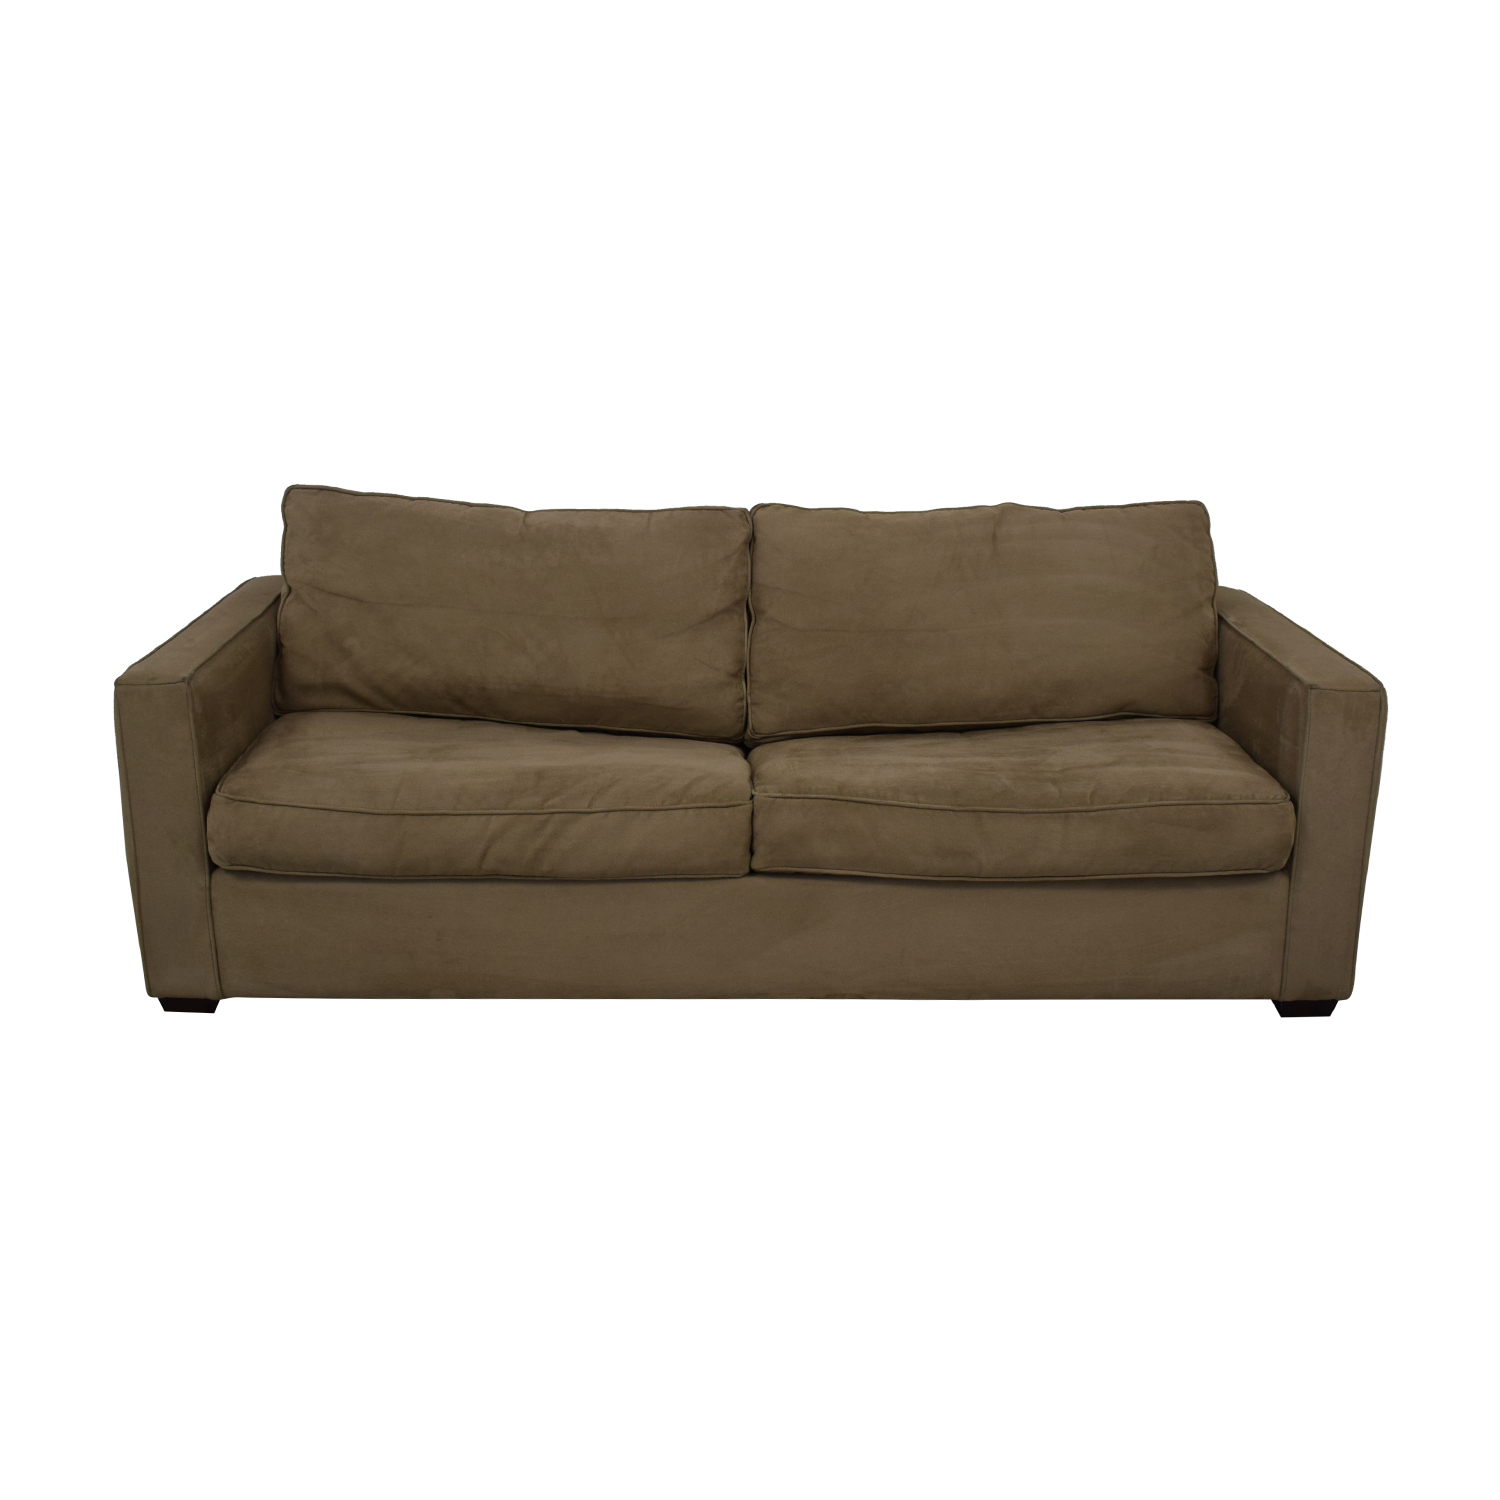 Crate & Barrel Queen Sleeper Sofa Crate & Barrel